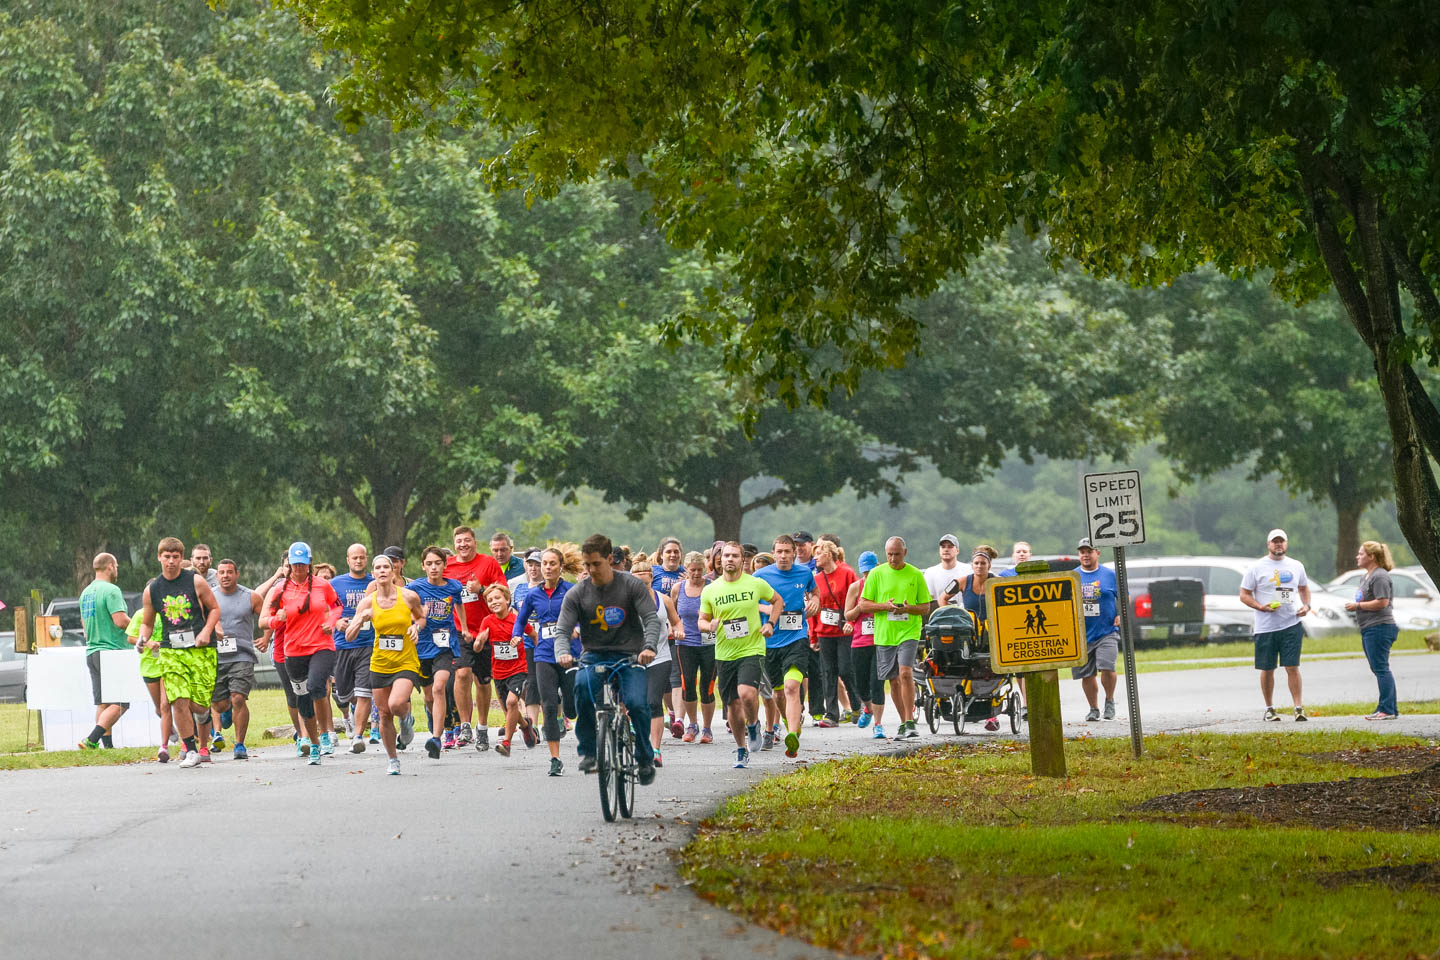 First Annual One Step at a Time 5K 2015